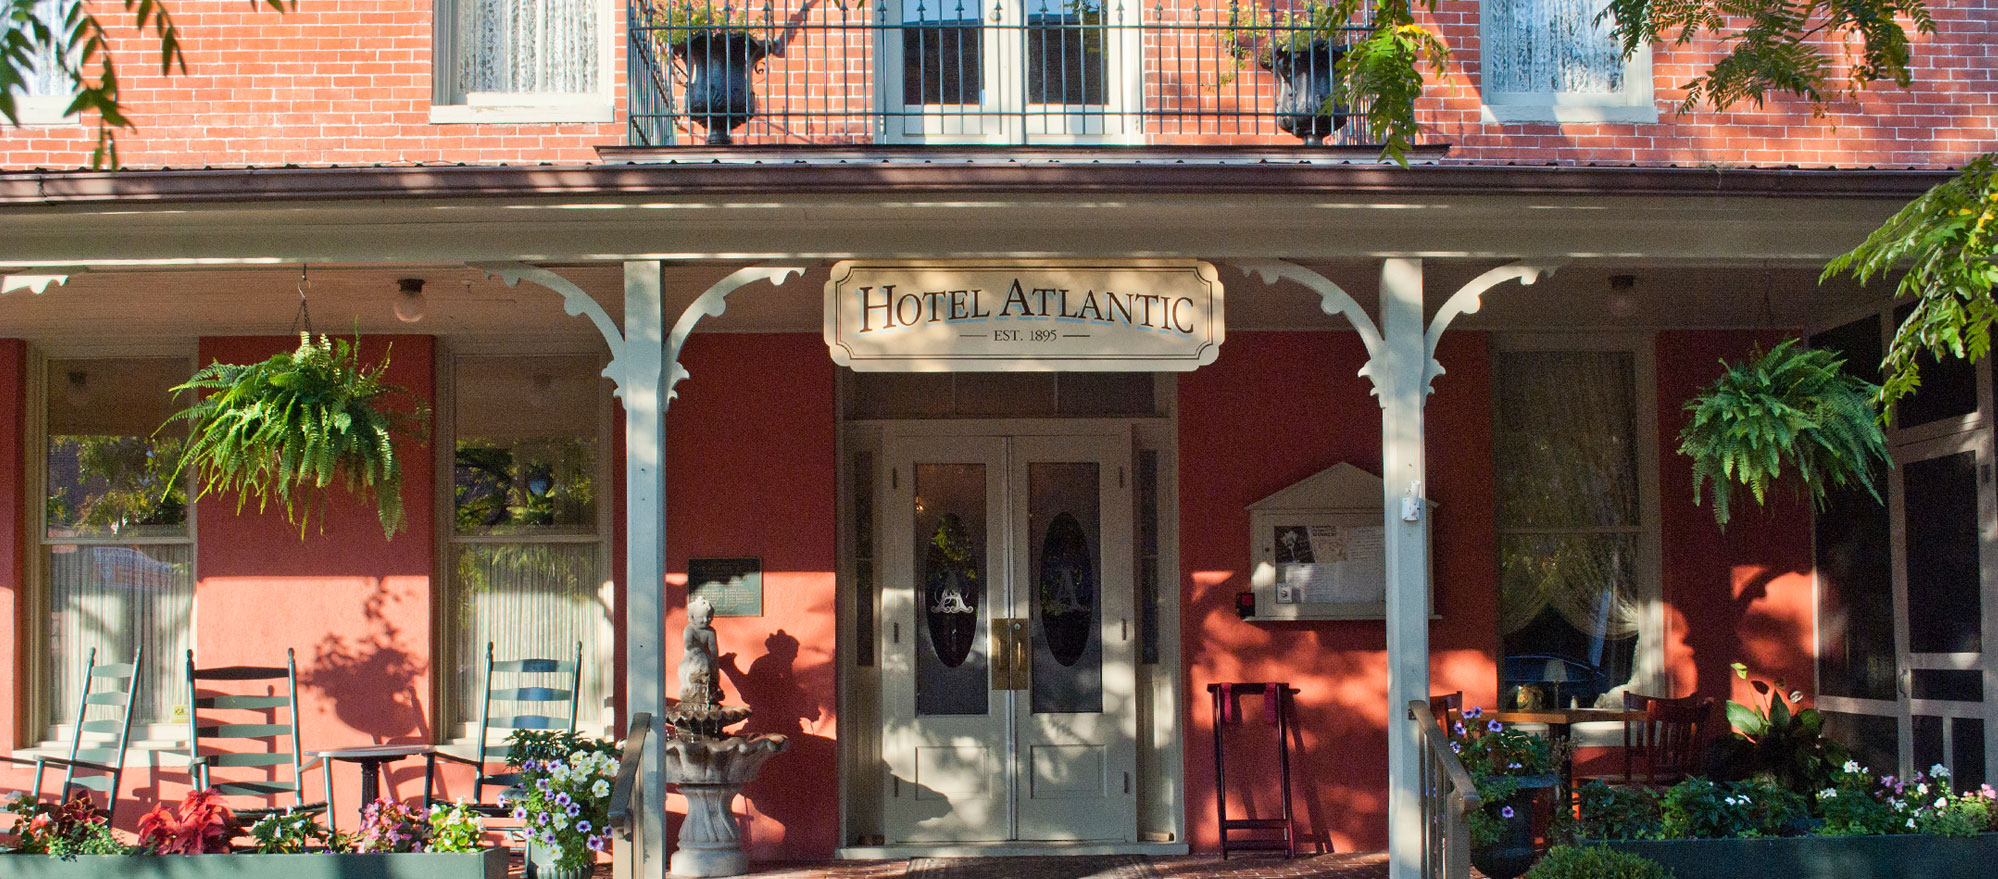 Celebrating 120th Anniversary at the Atlantic Hotel